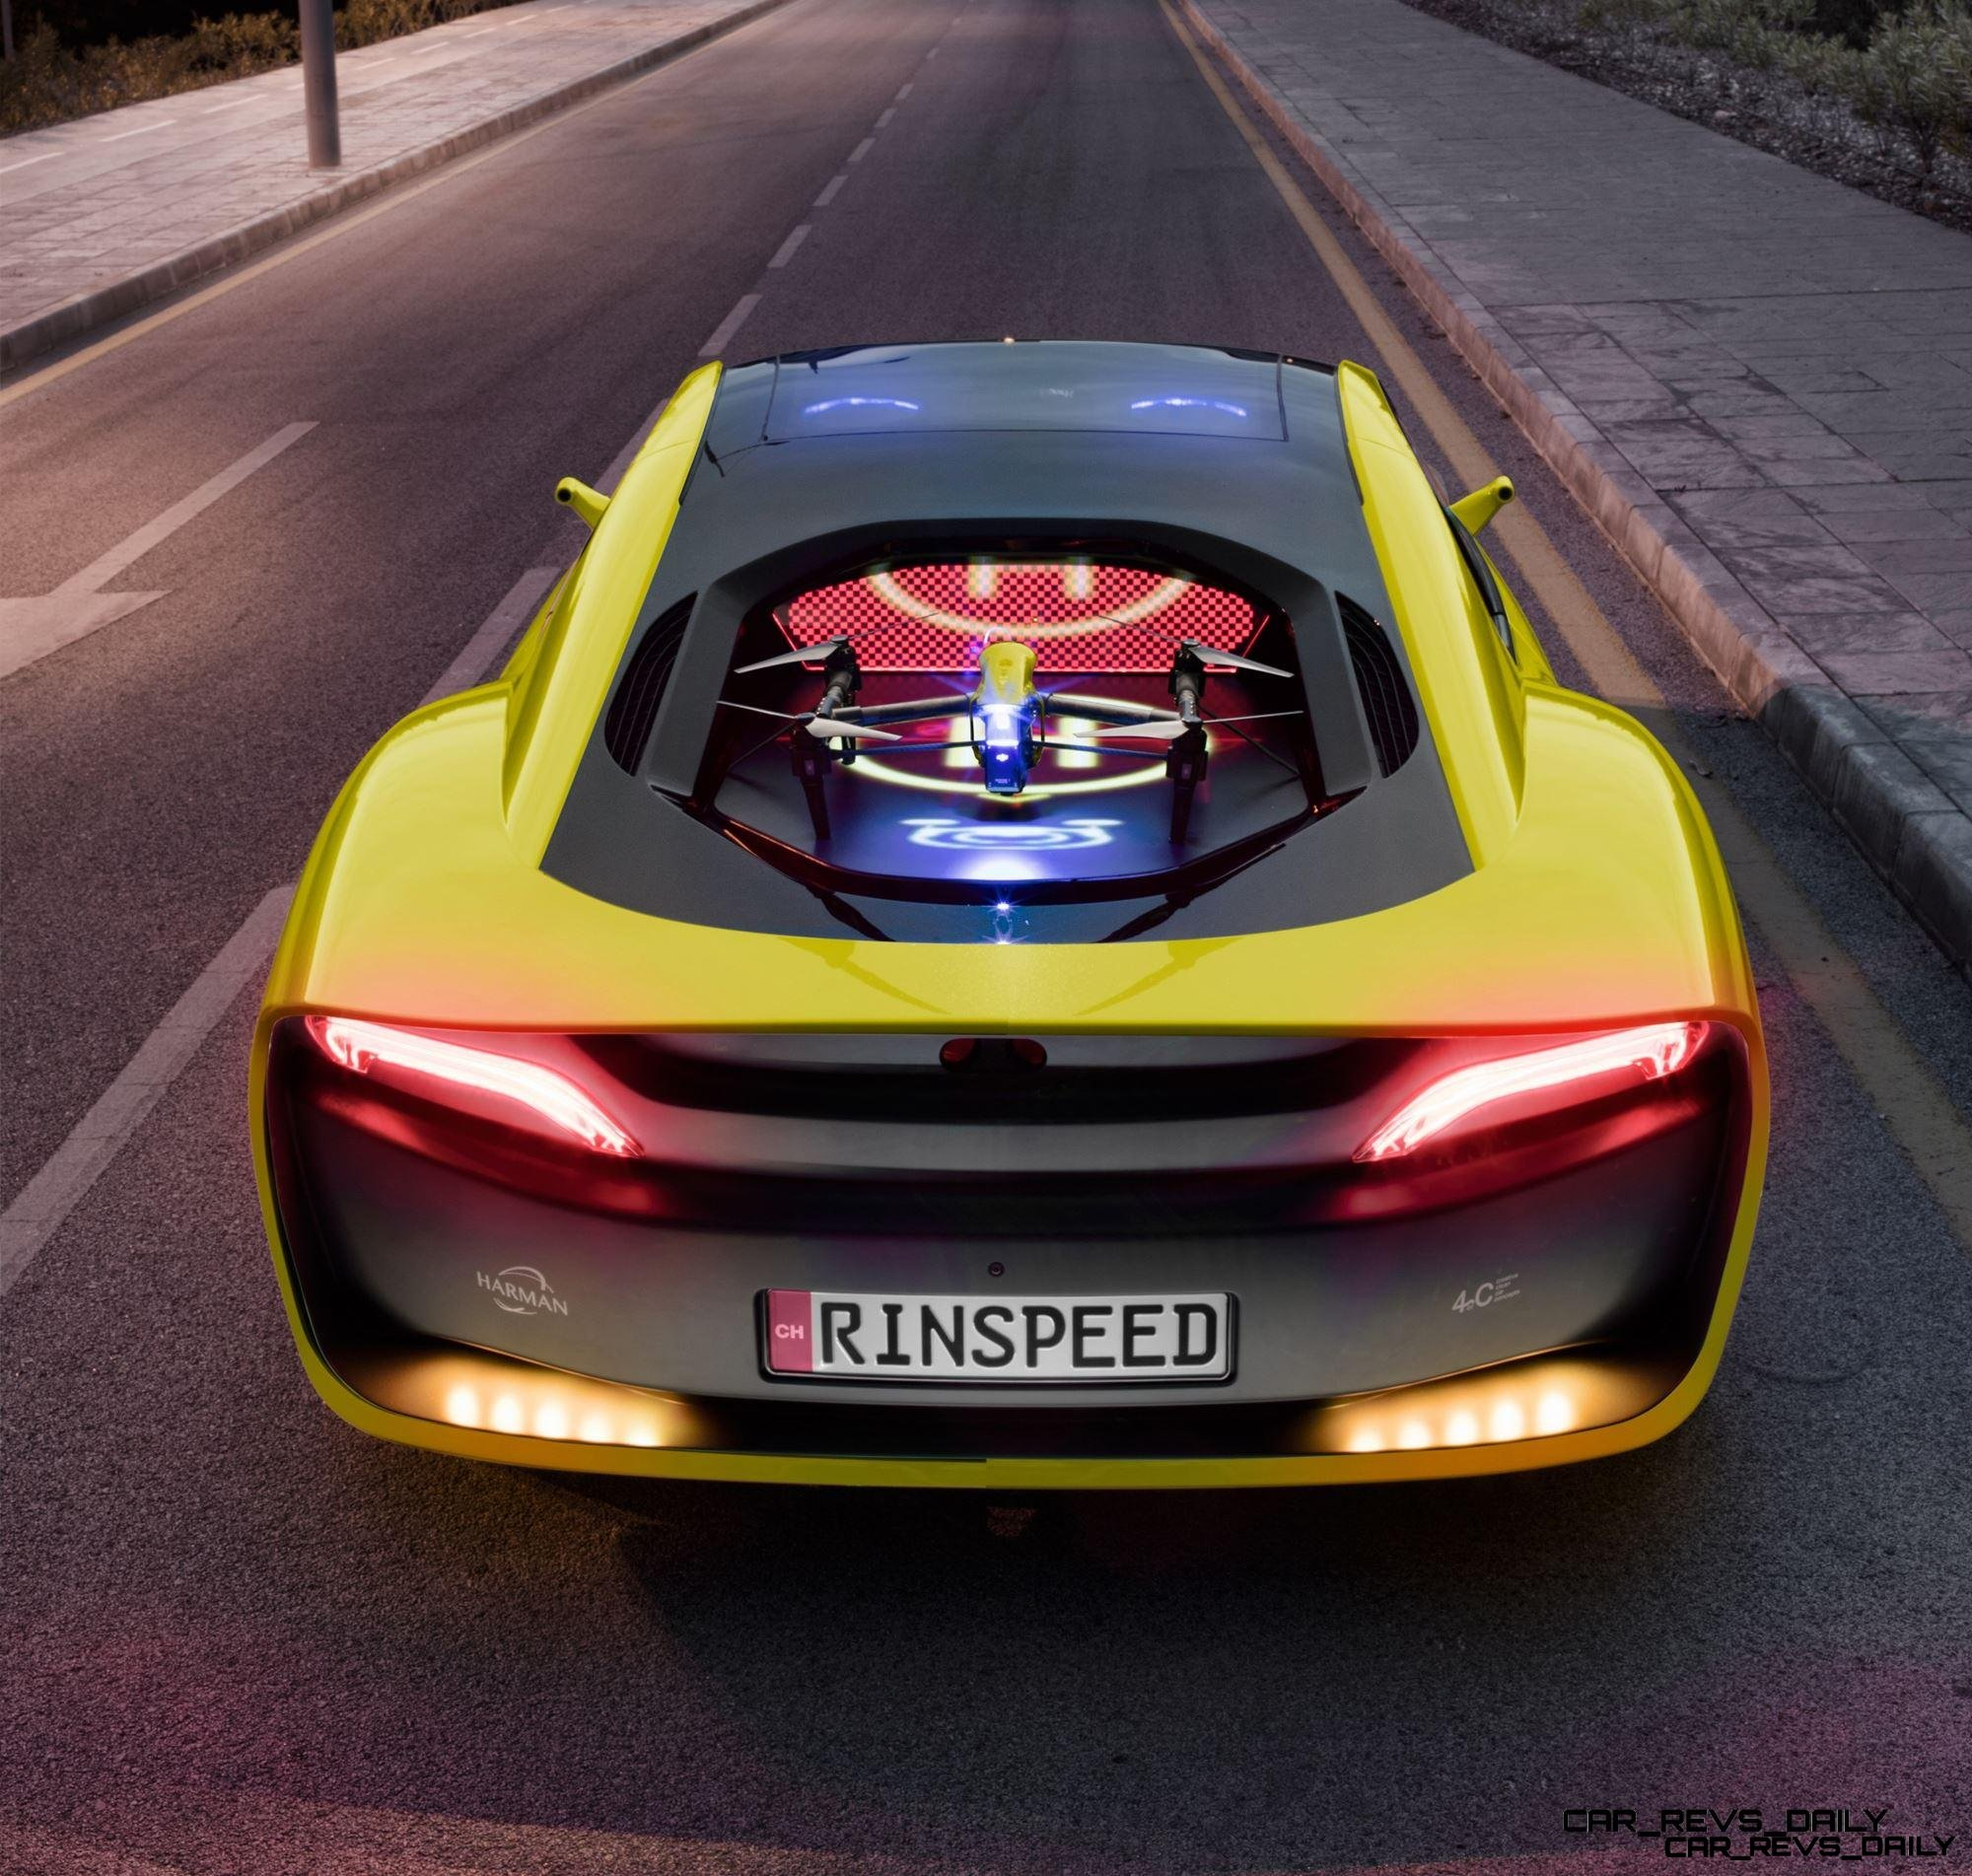 Future Cars: Self-Driving, Drone-Launching